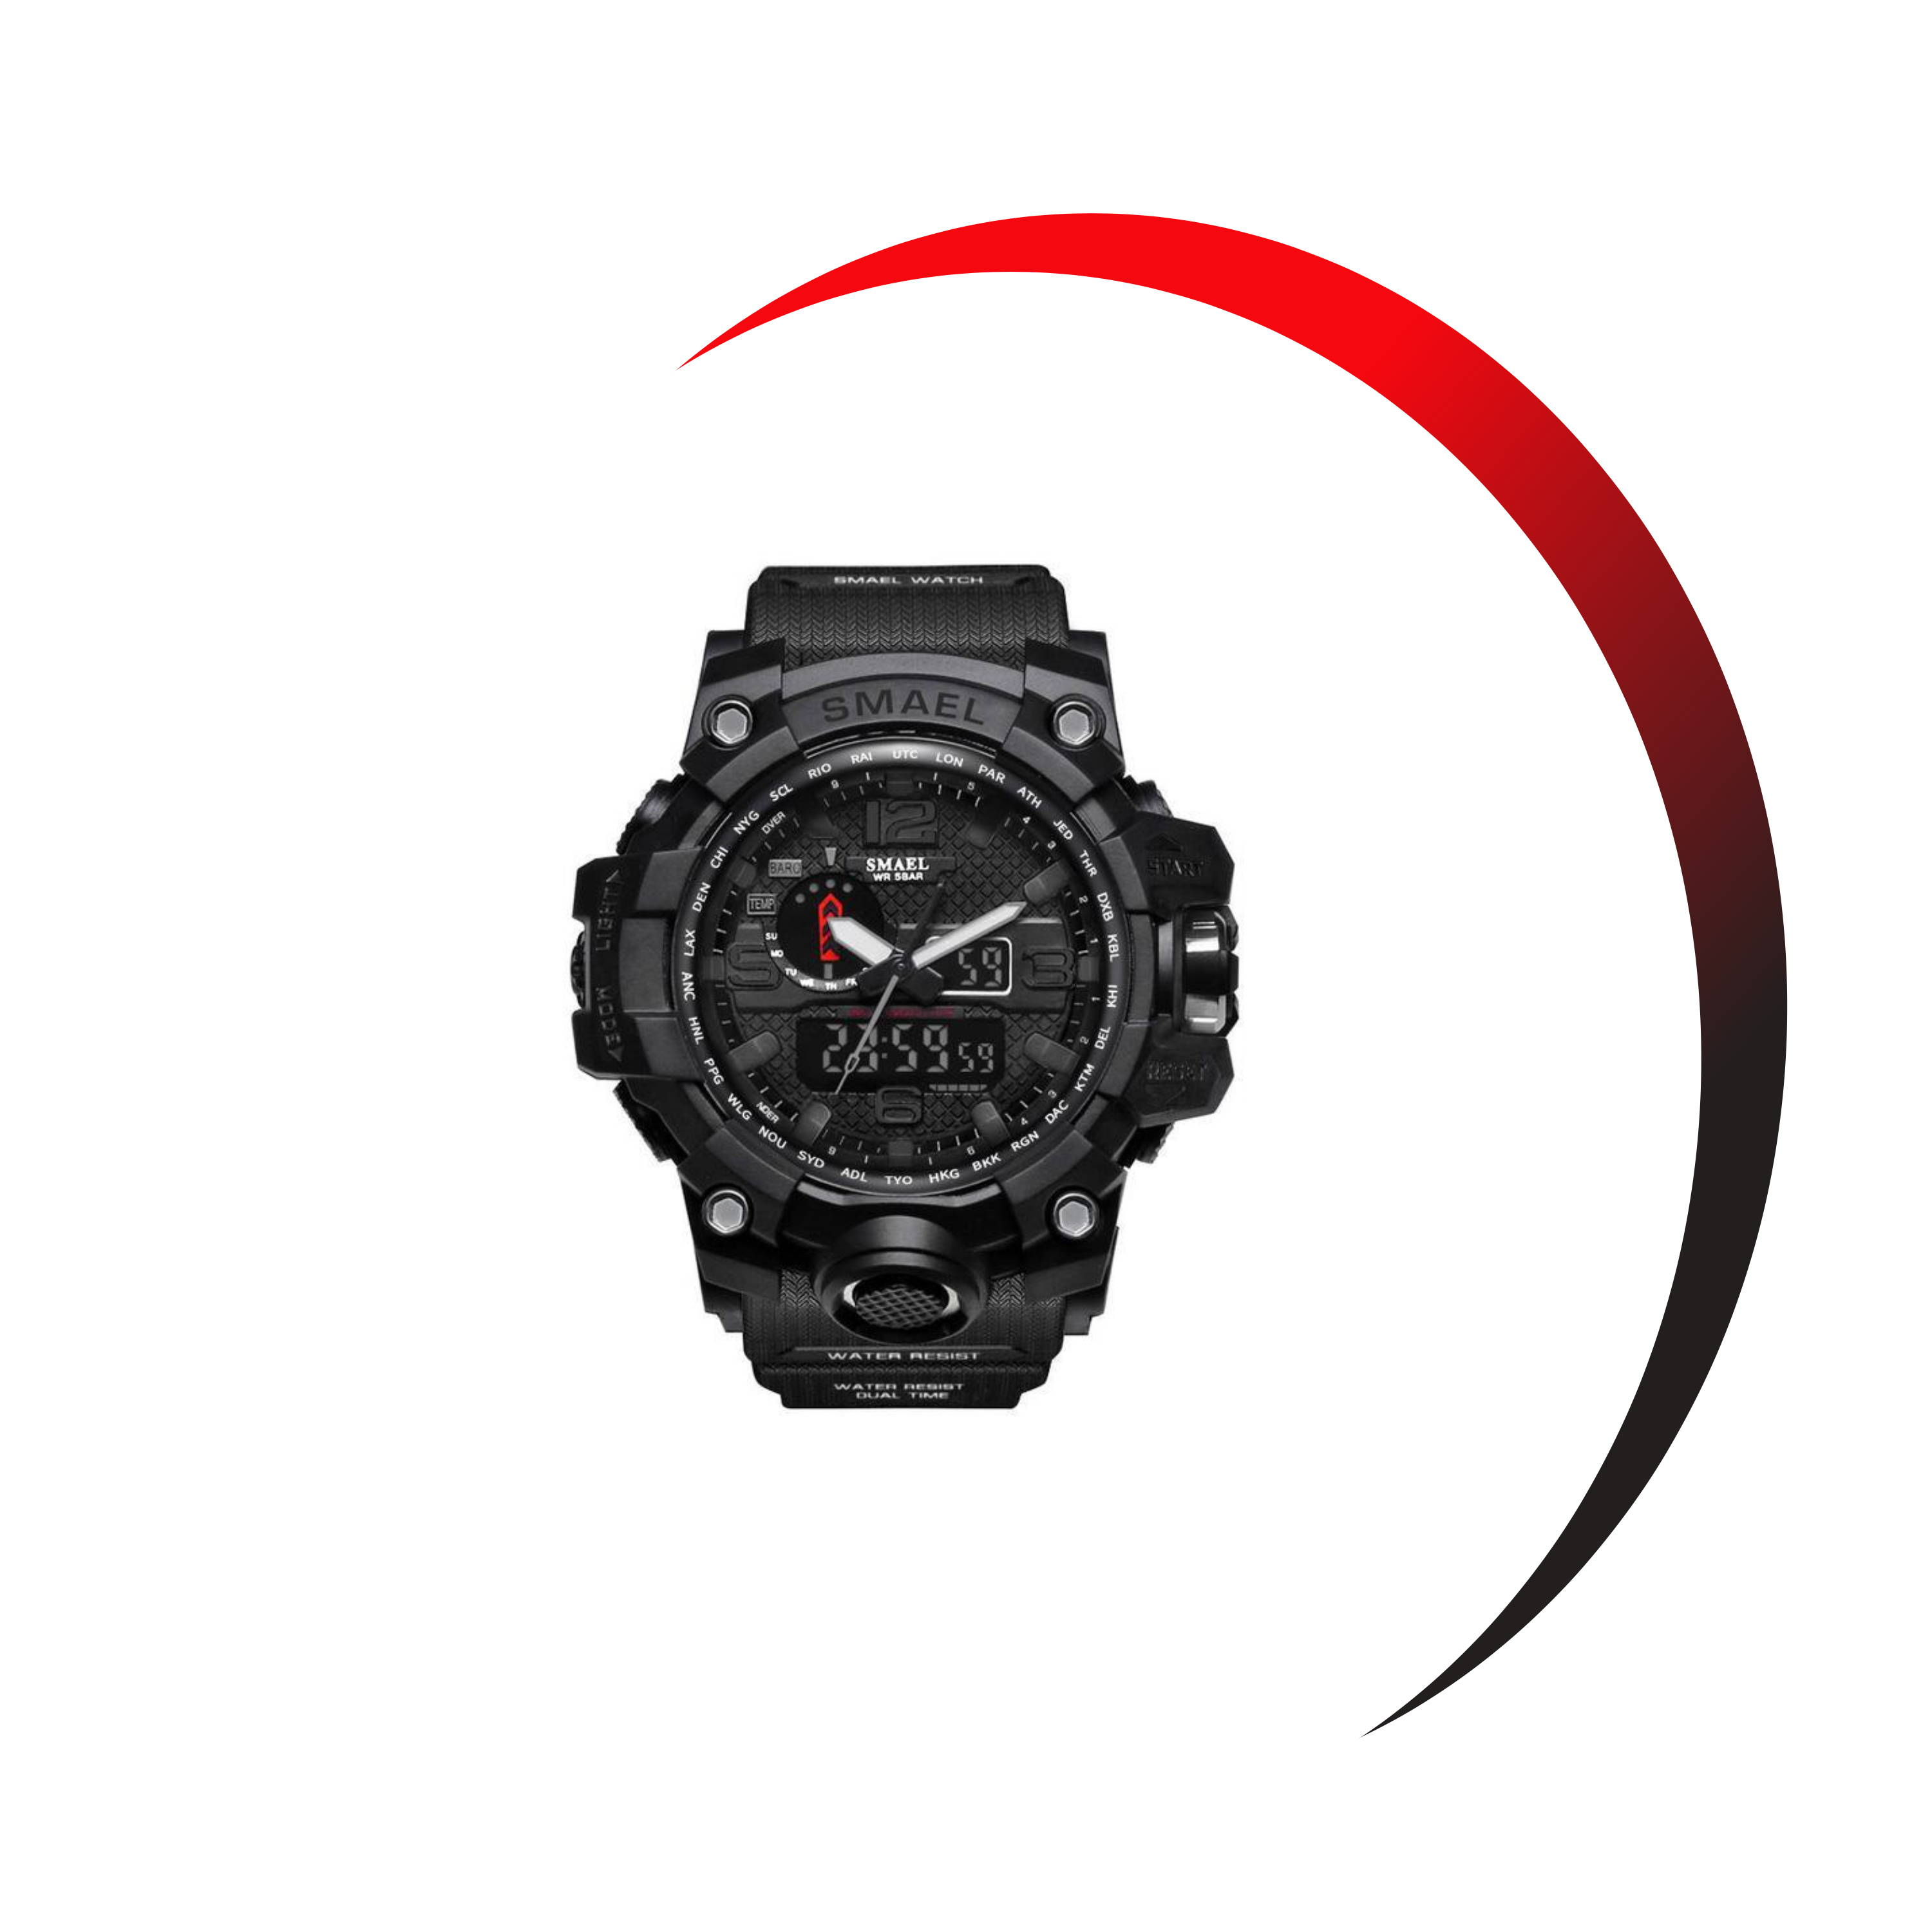 swiss army watch, waterproof watch, tactical watch, men's leather military casual analog quartz wrist watch business watches gifts, swiss army watches, best military watch, military watches for men, seiko military watch, rugged watch, durable watch, military watch wristwatches, military watches for men, swiss military watch, british military watches, british military watch, military style watches, digital all black military style sports smart watch activity tracker ios android wristwatches, military watches uk, army watch, real military watches, timex military watch, smael military watch, smael men's military sport wrist watch quartz dual movement with analog digital, swiss military watches, pulsar military watch, military watch company, military watches for sale, miltary watch, vintage military watches, g shock military watch, russian military watch, military watches, Waterproof watches, tactical watches, army watches, mens military watches, rugged watches, durable watches, womens military watches, army watch under 100, army watches under 100, tactical watch, tactical watches, Water Resistant watch, Water Resistant watches, Shock Resistant watches, Shock Resistant watch, Shock Resistant army watches, Shock Resistant tactical watches, Shock Resistant tactical watch, g shock military watches, g shock military watch, best military watch under 100, best military watches under 100, us military watch, us military watches, gwg 1000 1a1, fishing watch, fishing watches, hunting watches, hunting watch, military dive watch, canadian military watch, best tactical watch 2019, best tactical watches 2019